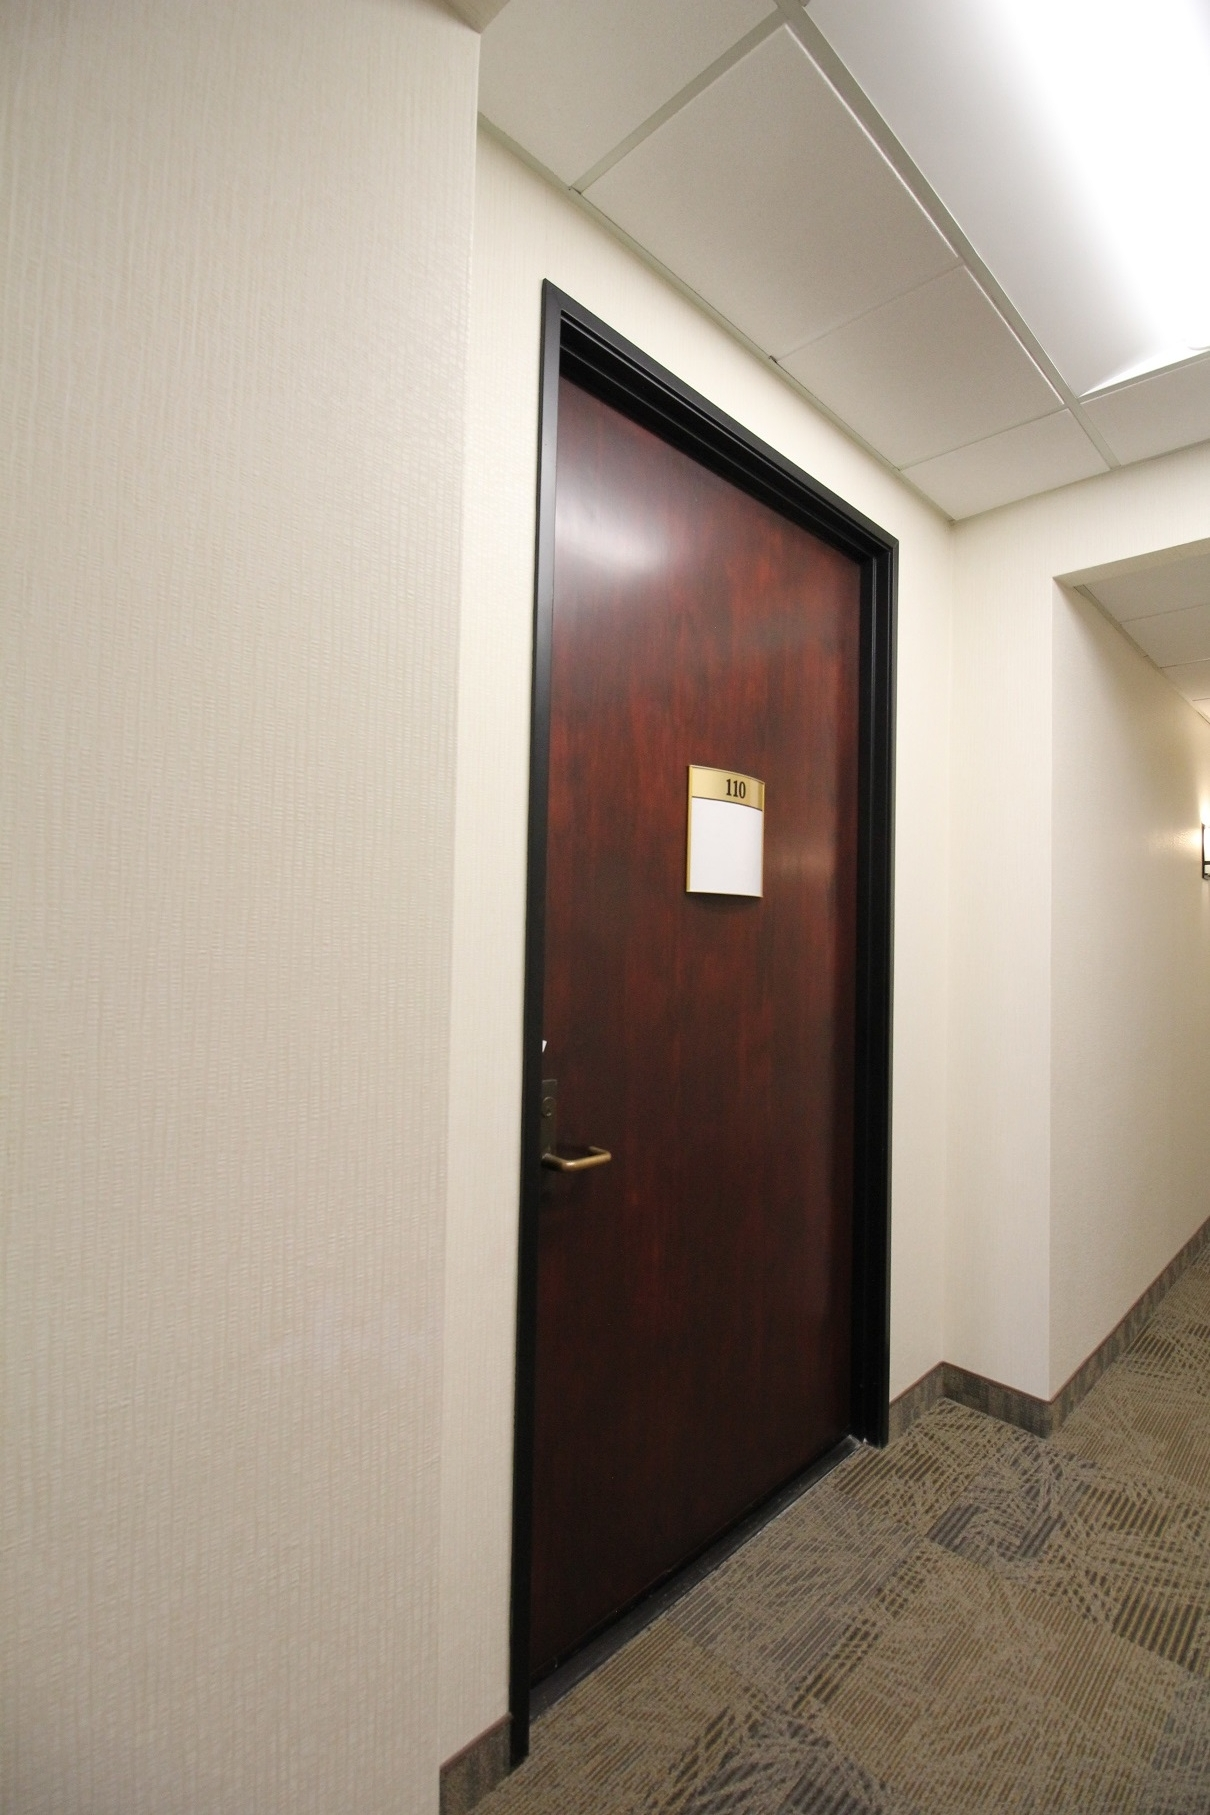 Westlake Village Medical Office For Lease Space Doctor Physican Rent Best Private Practice Hospital Surgical 27.jpg